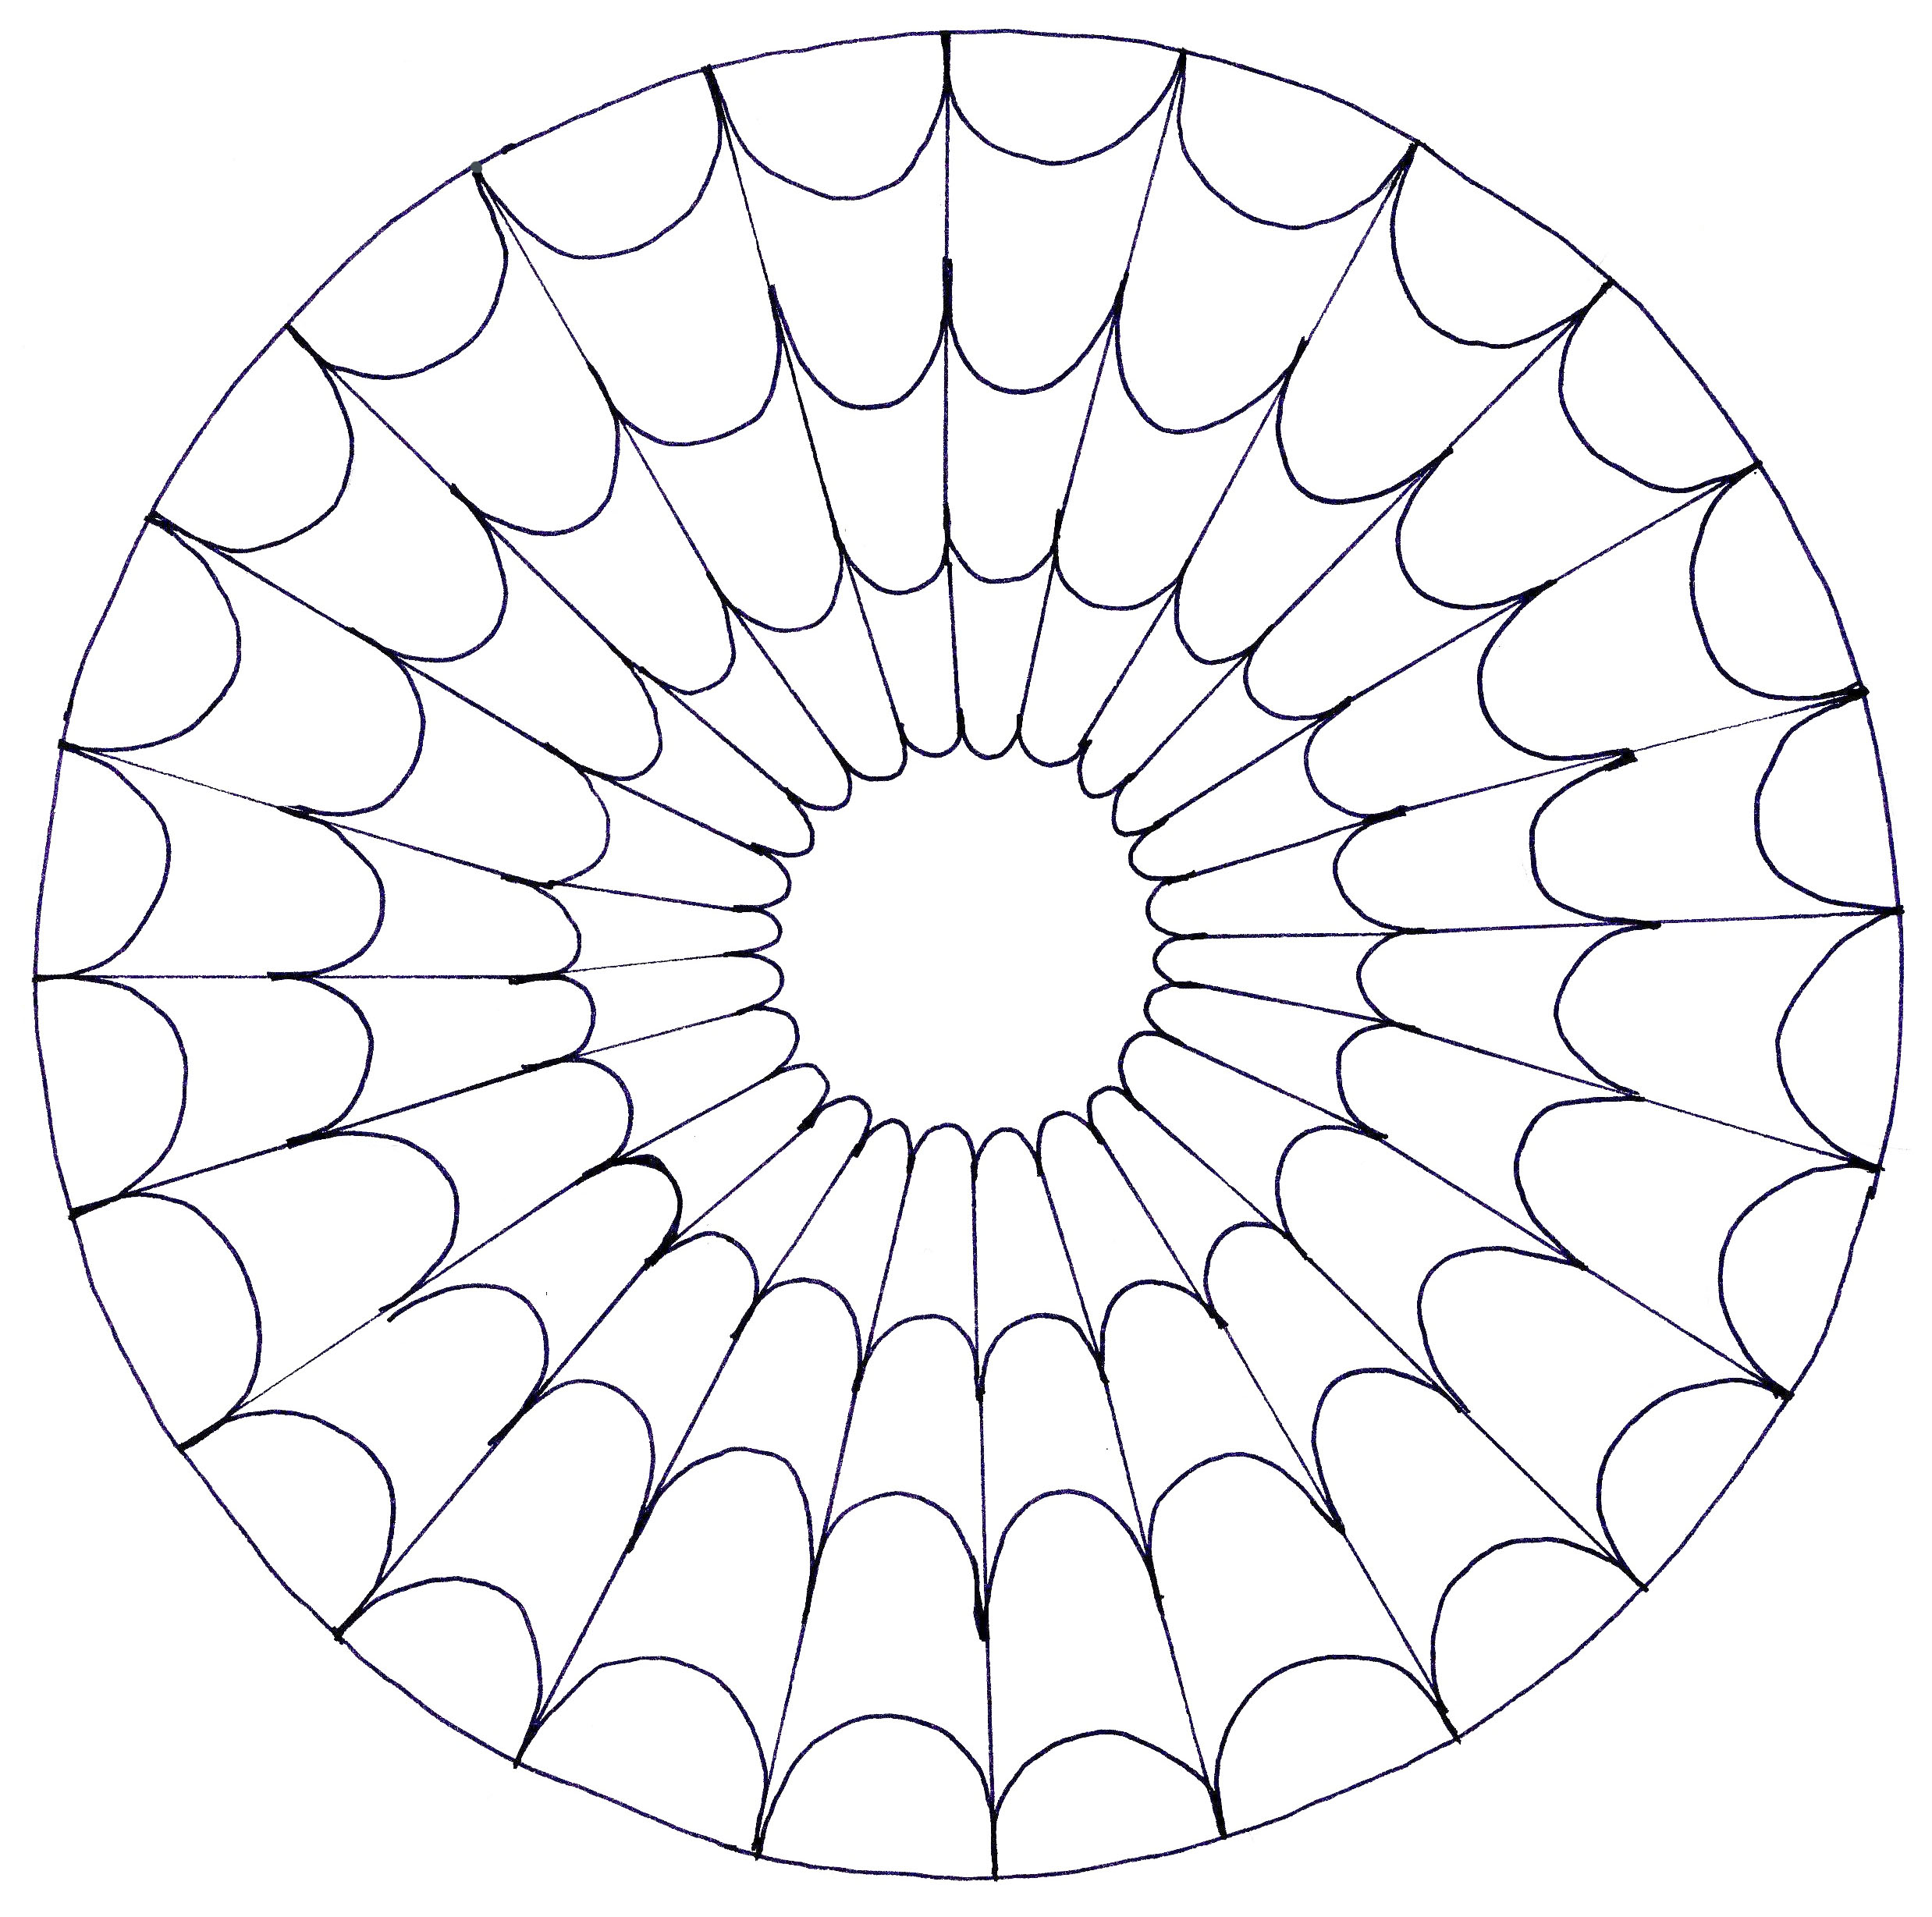 20 Geometric Pattern Coloring Pages Collection - Coloring ...